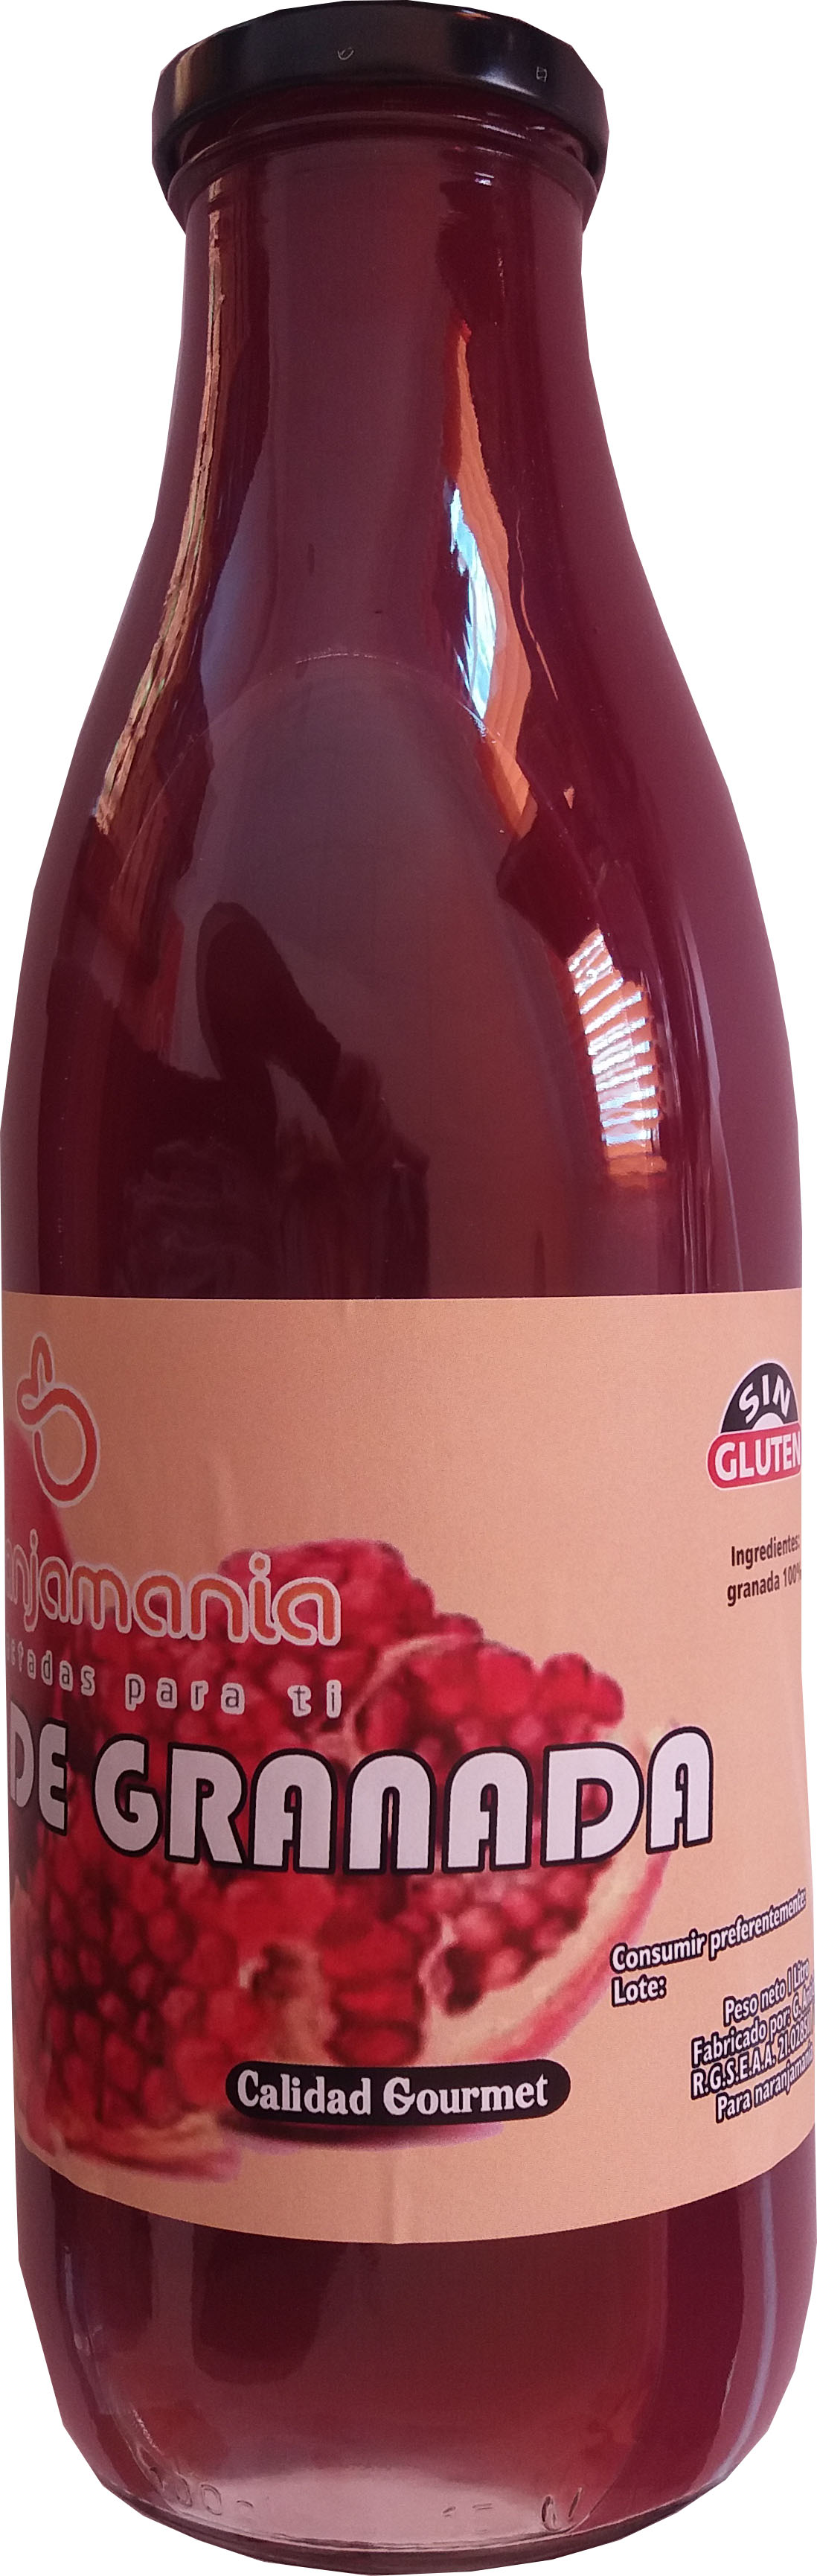 Natural juice of pomegranate box of 4 liters.